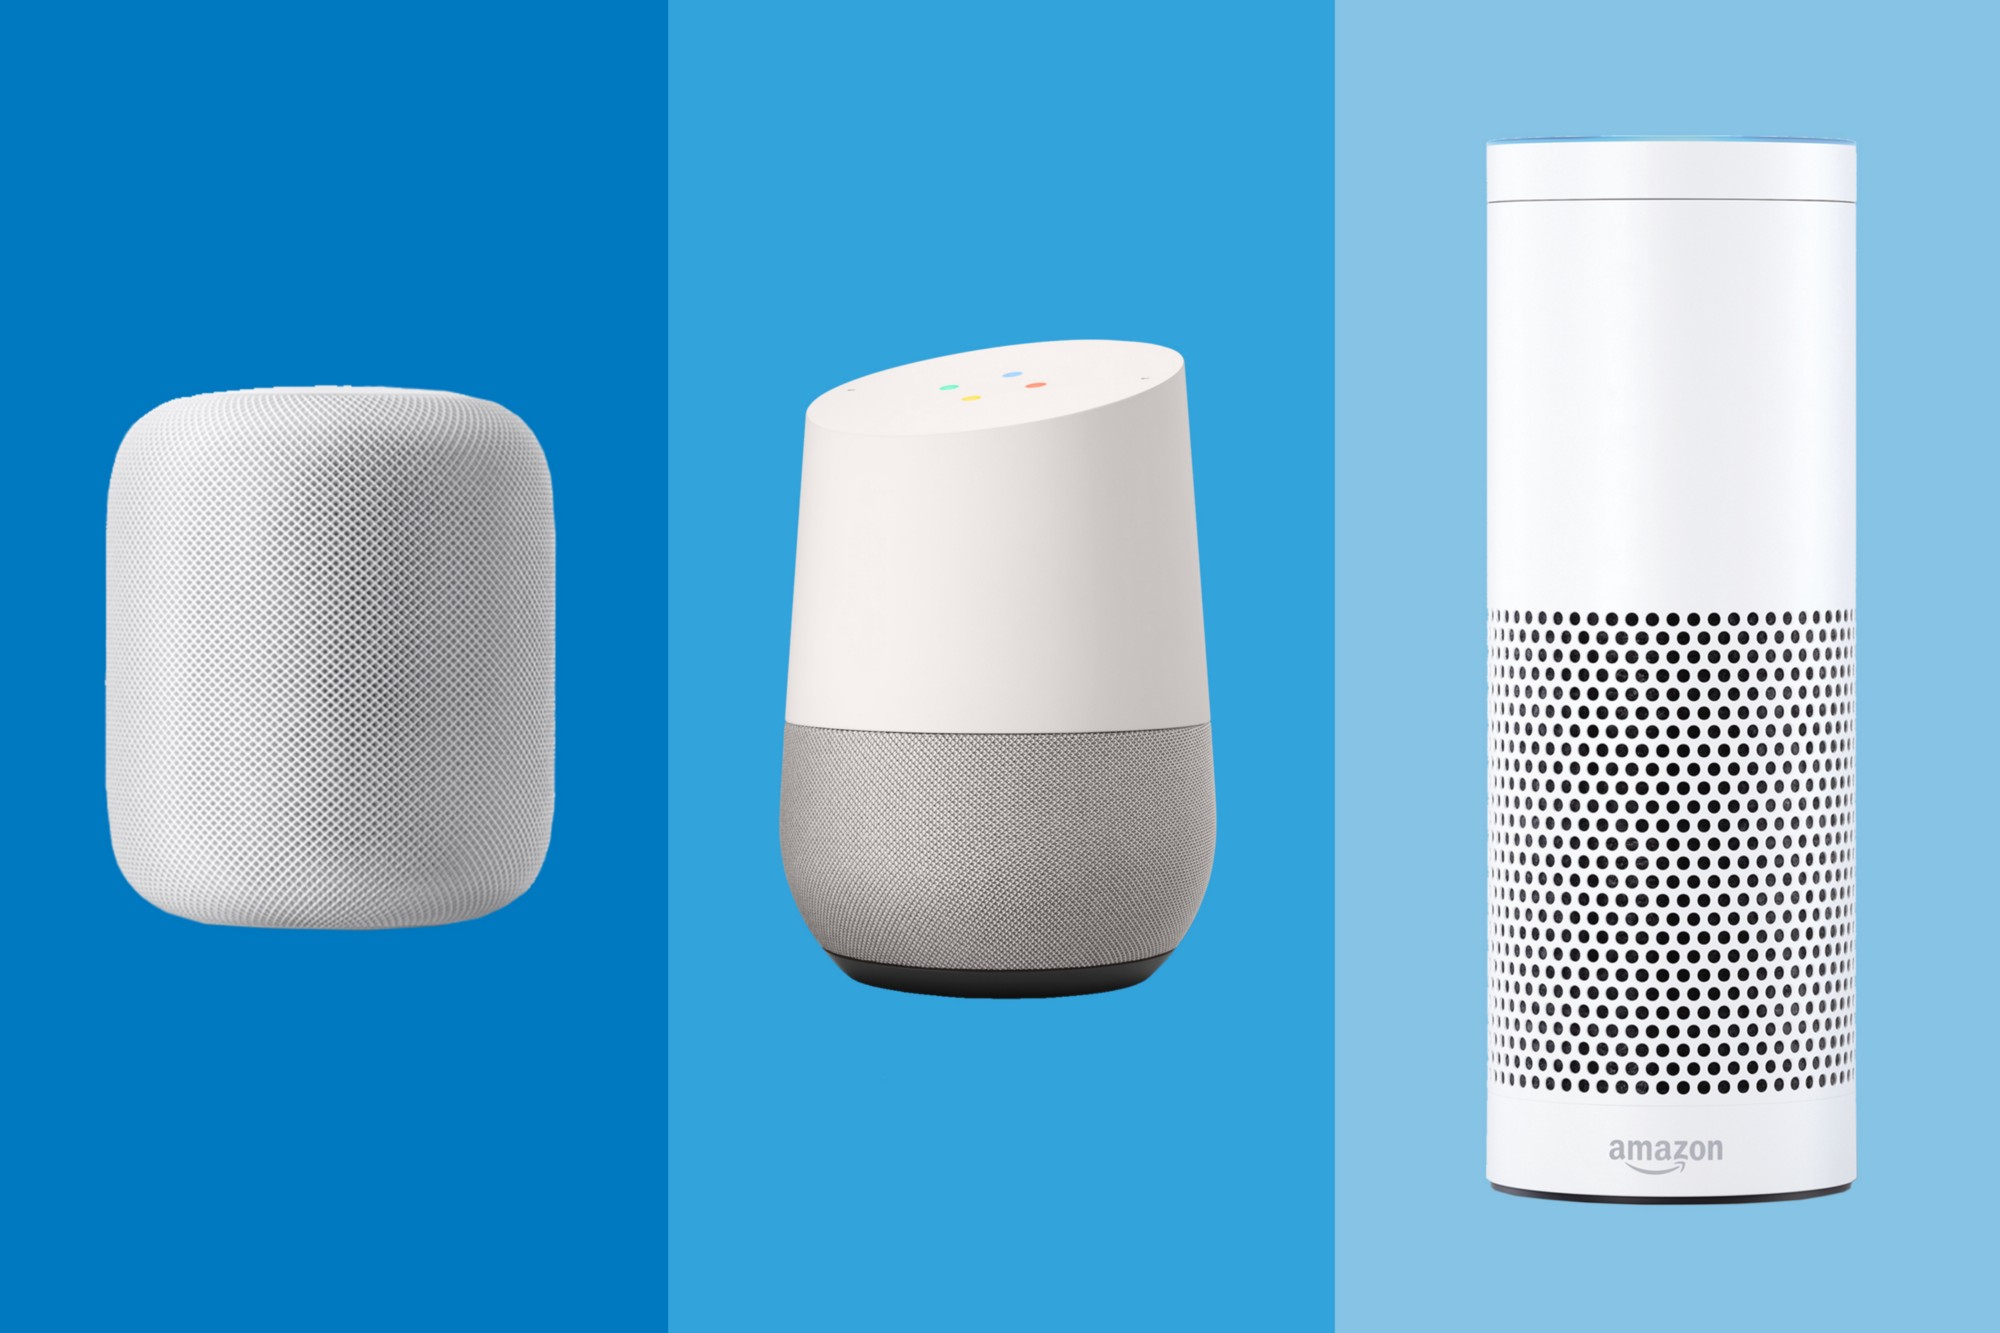 home assistant devices